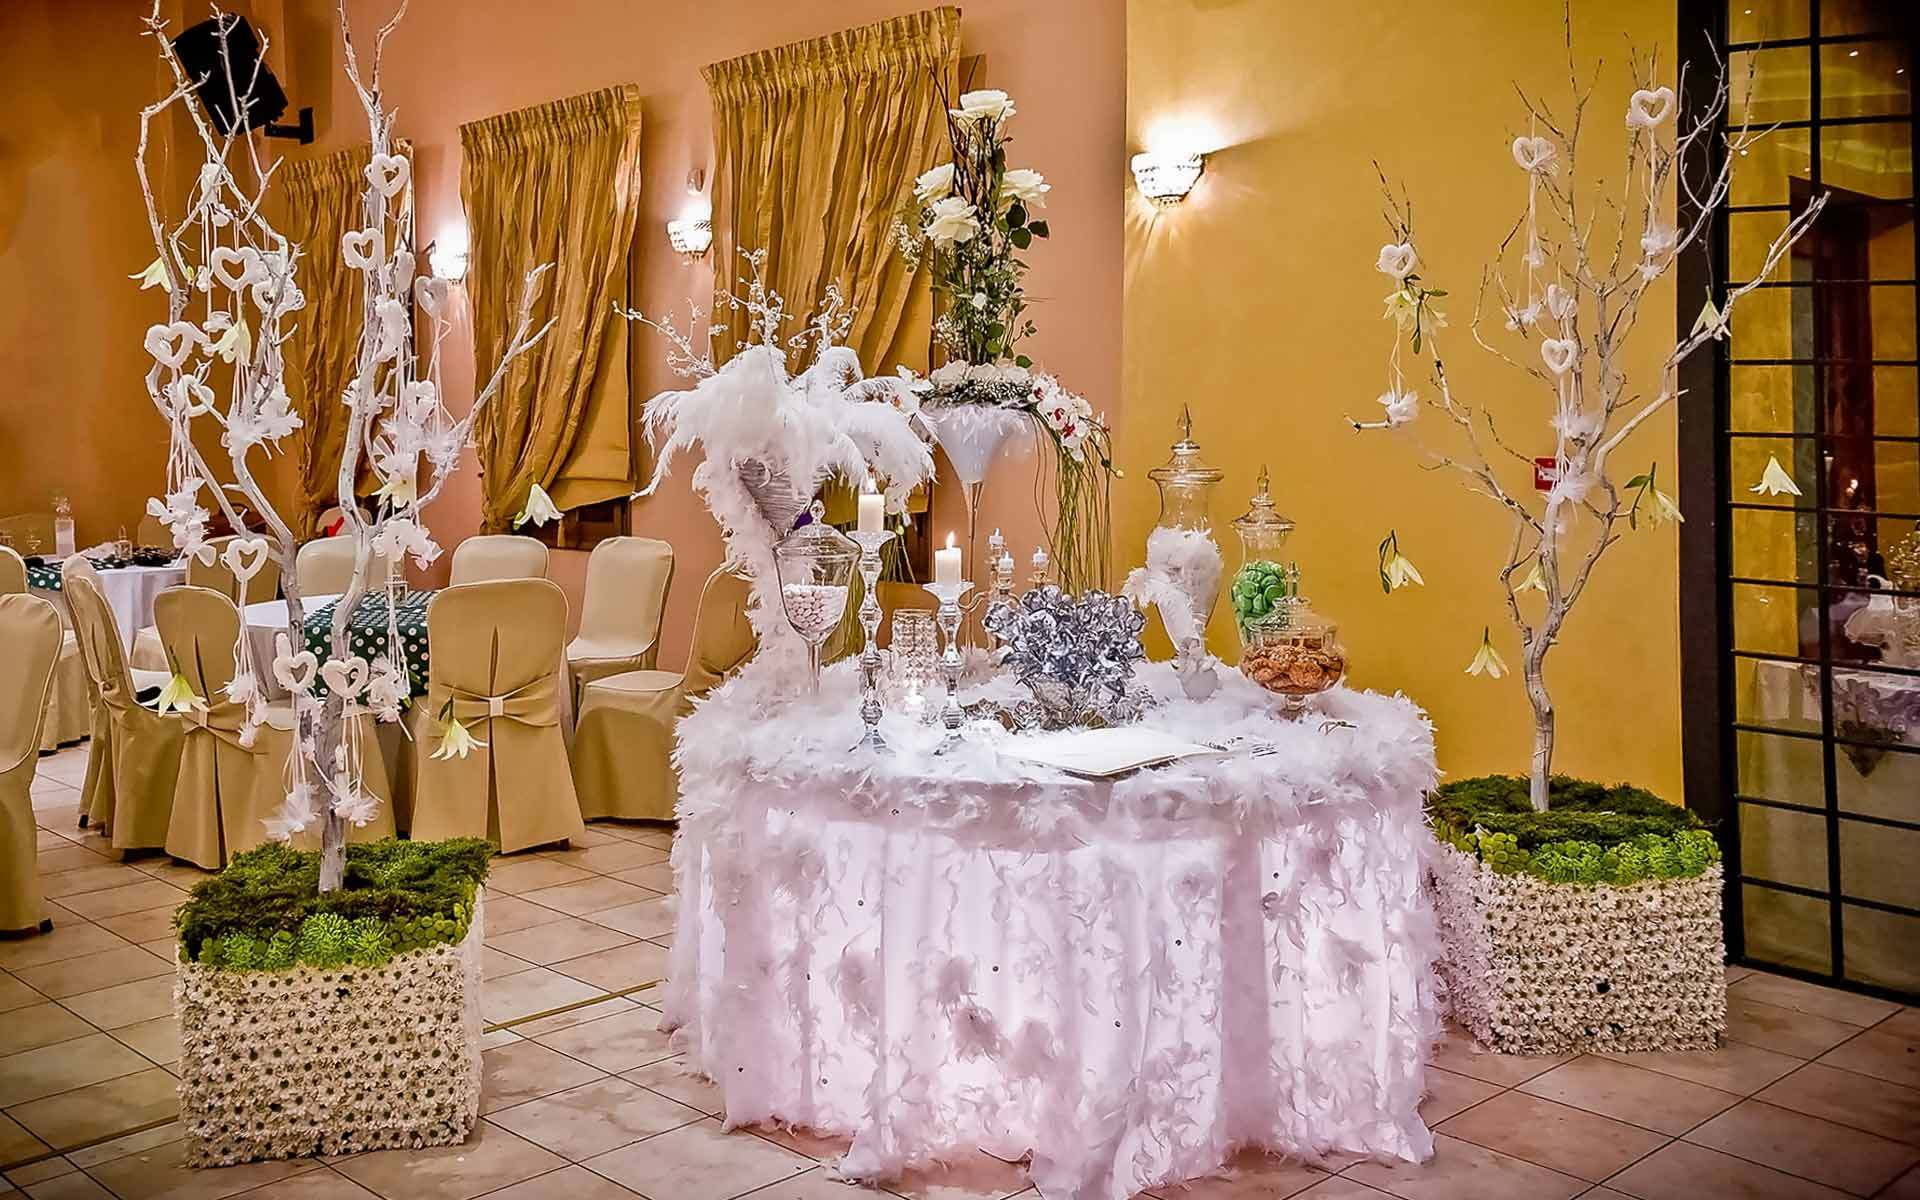 Glamorous-Trending-Wedding-Guest-Book-Sign-in-Table-Decoration-with-white-feathers